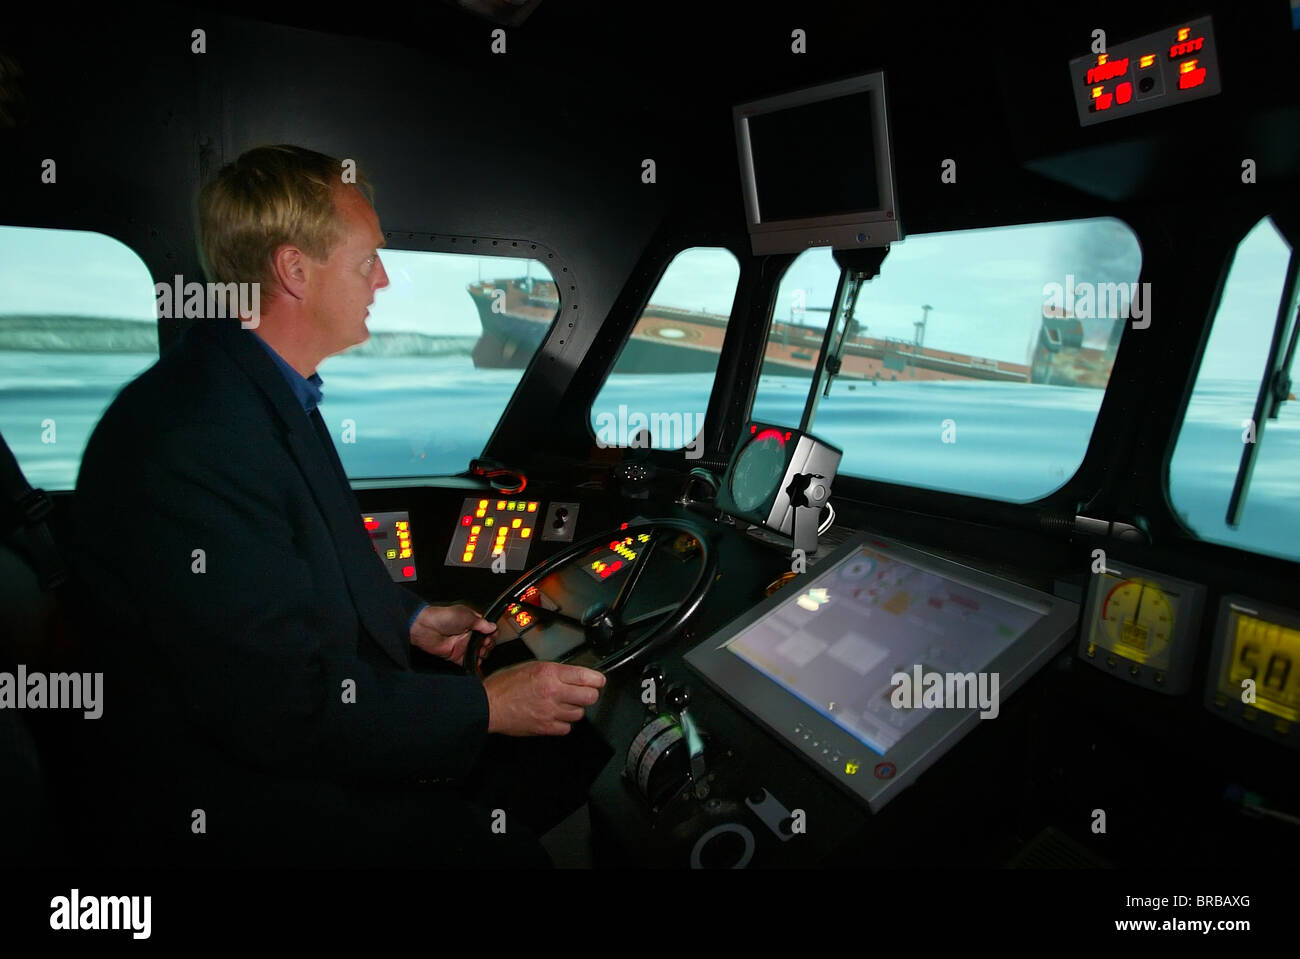 RNLI's Lifeboat College in Poole, Dorset - Lifeboat simulator. - Stock Image